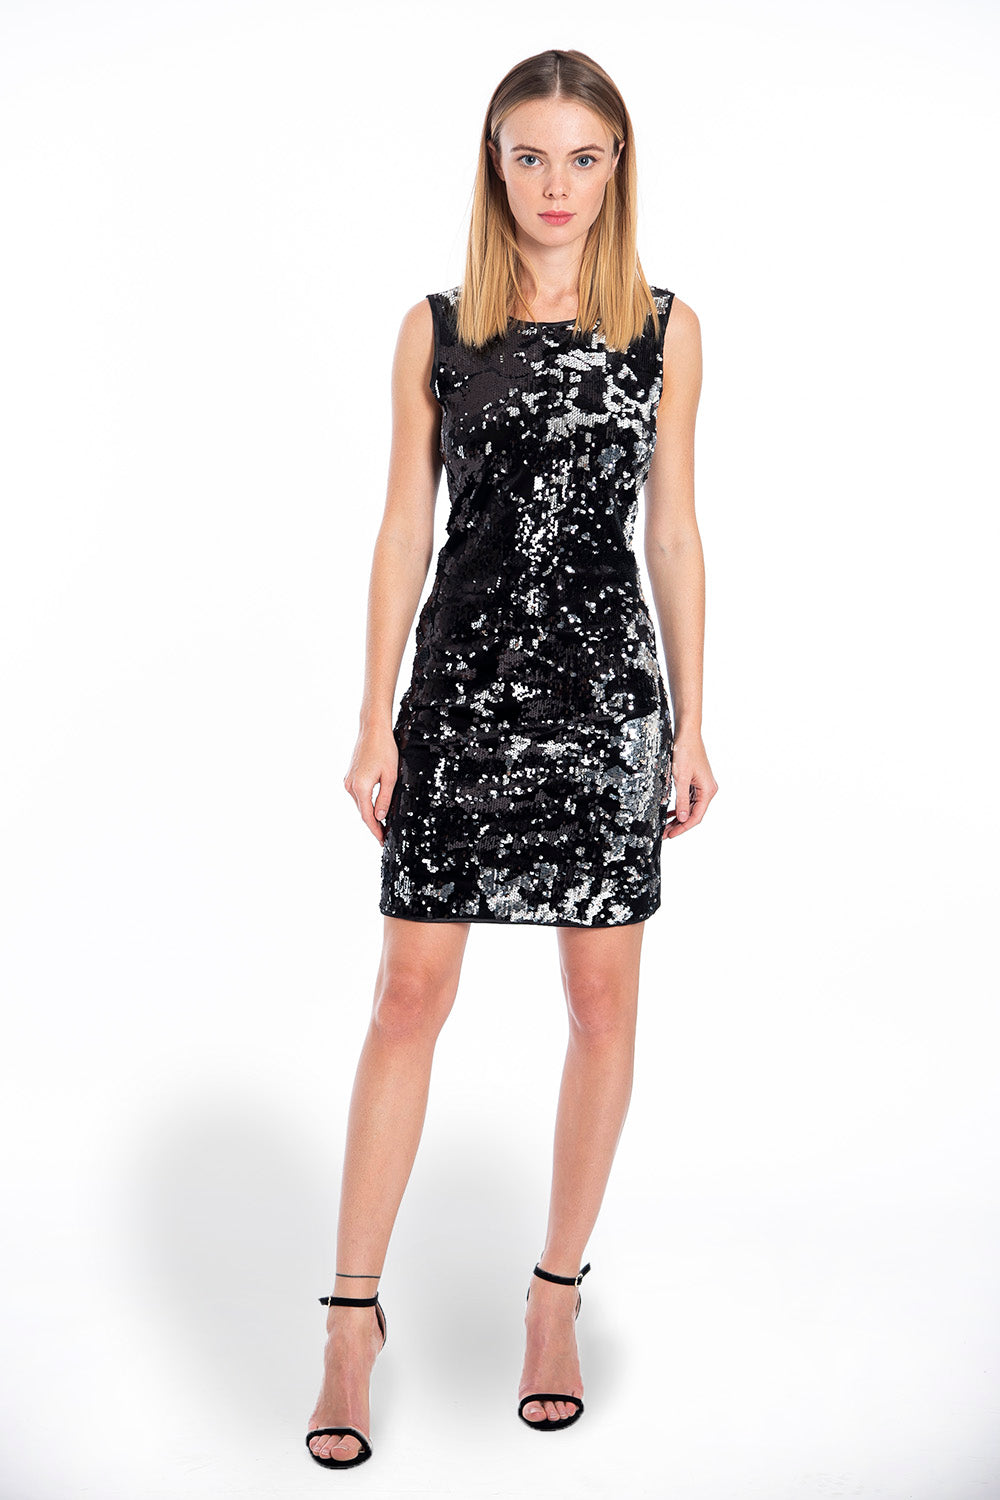 Rinascimento black and silver mini sequin dress with open back